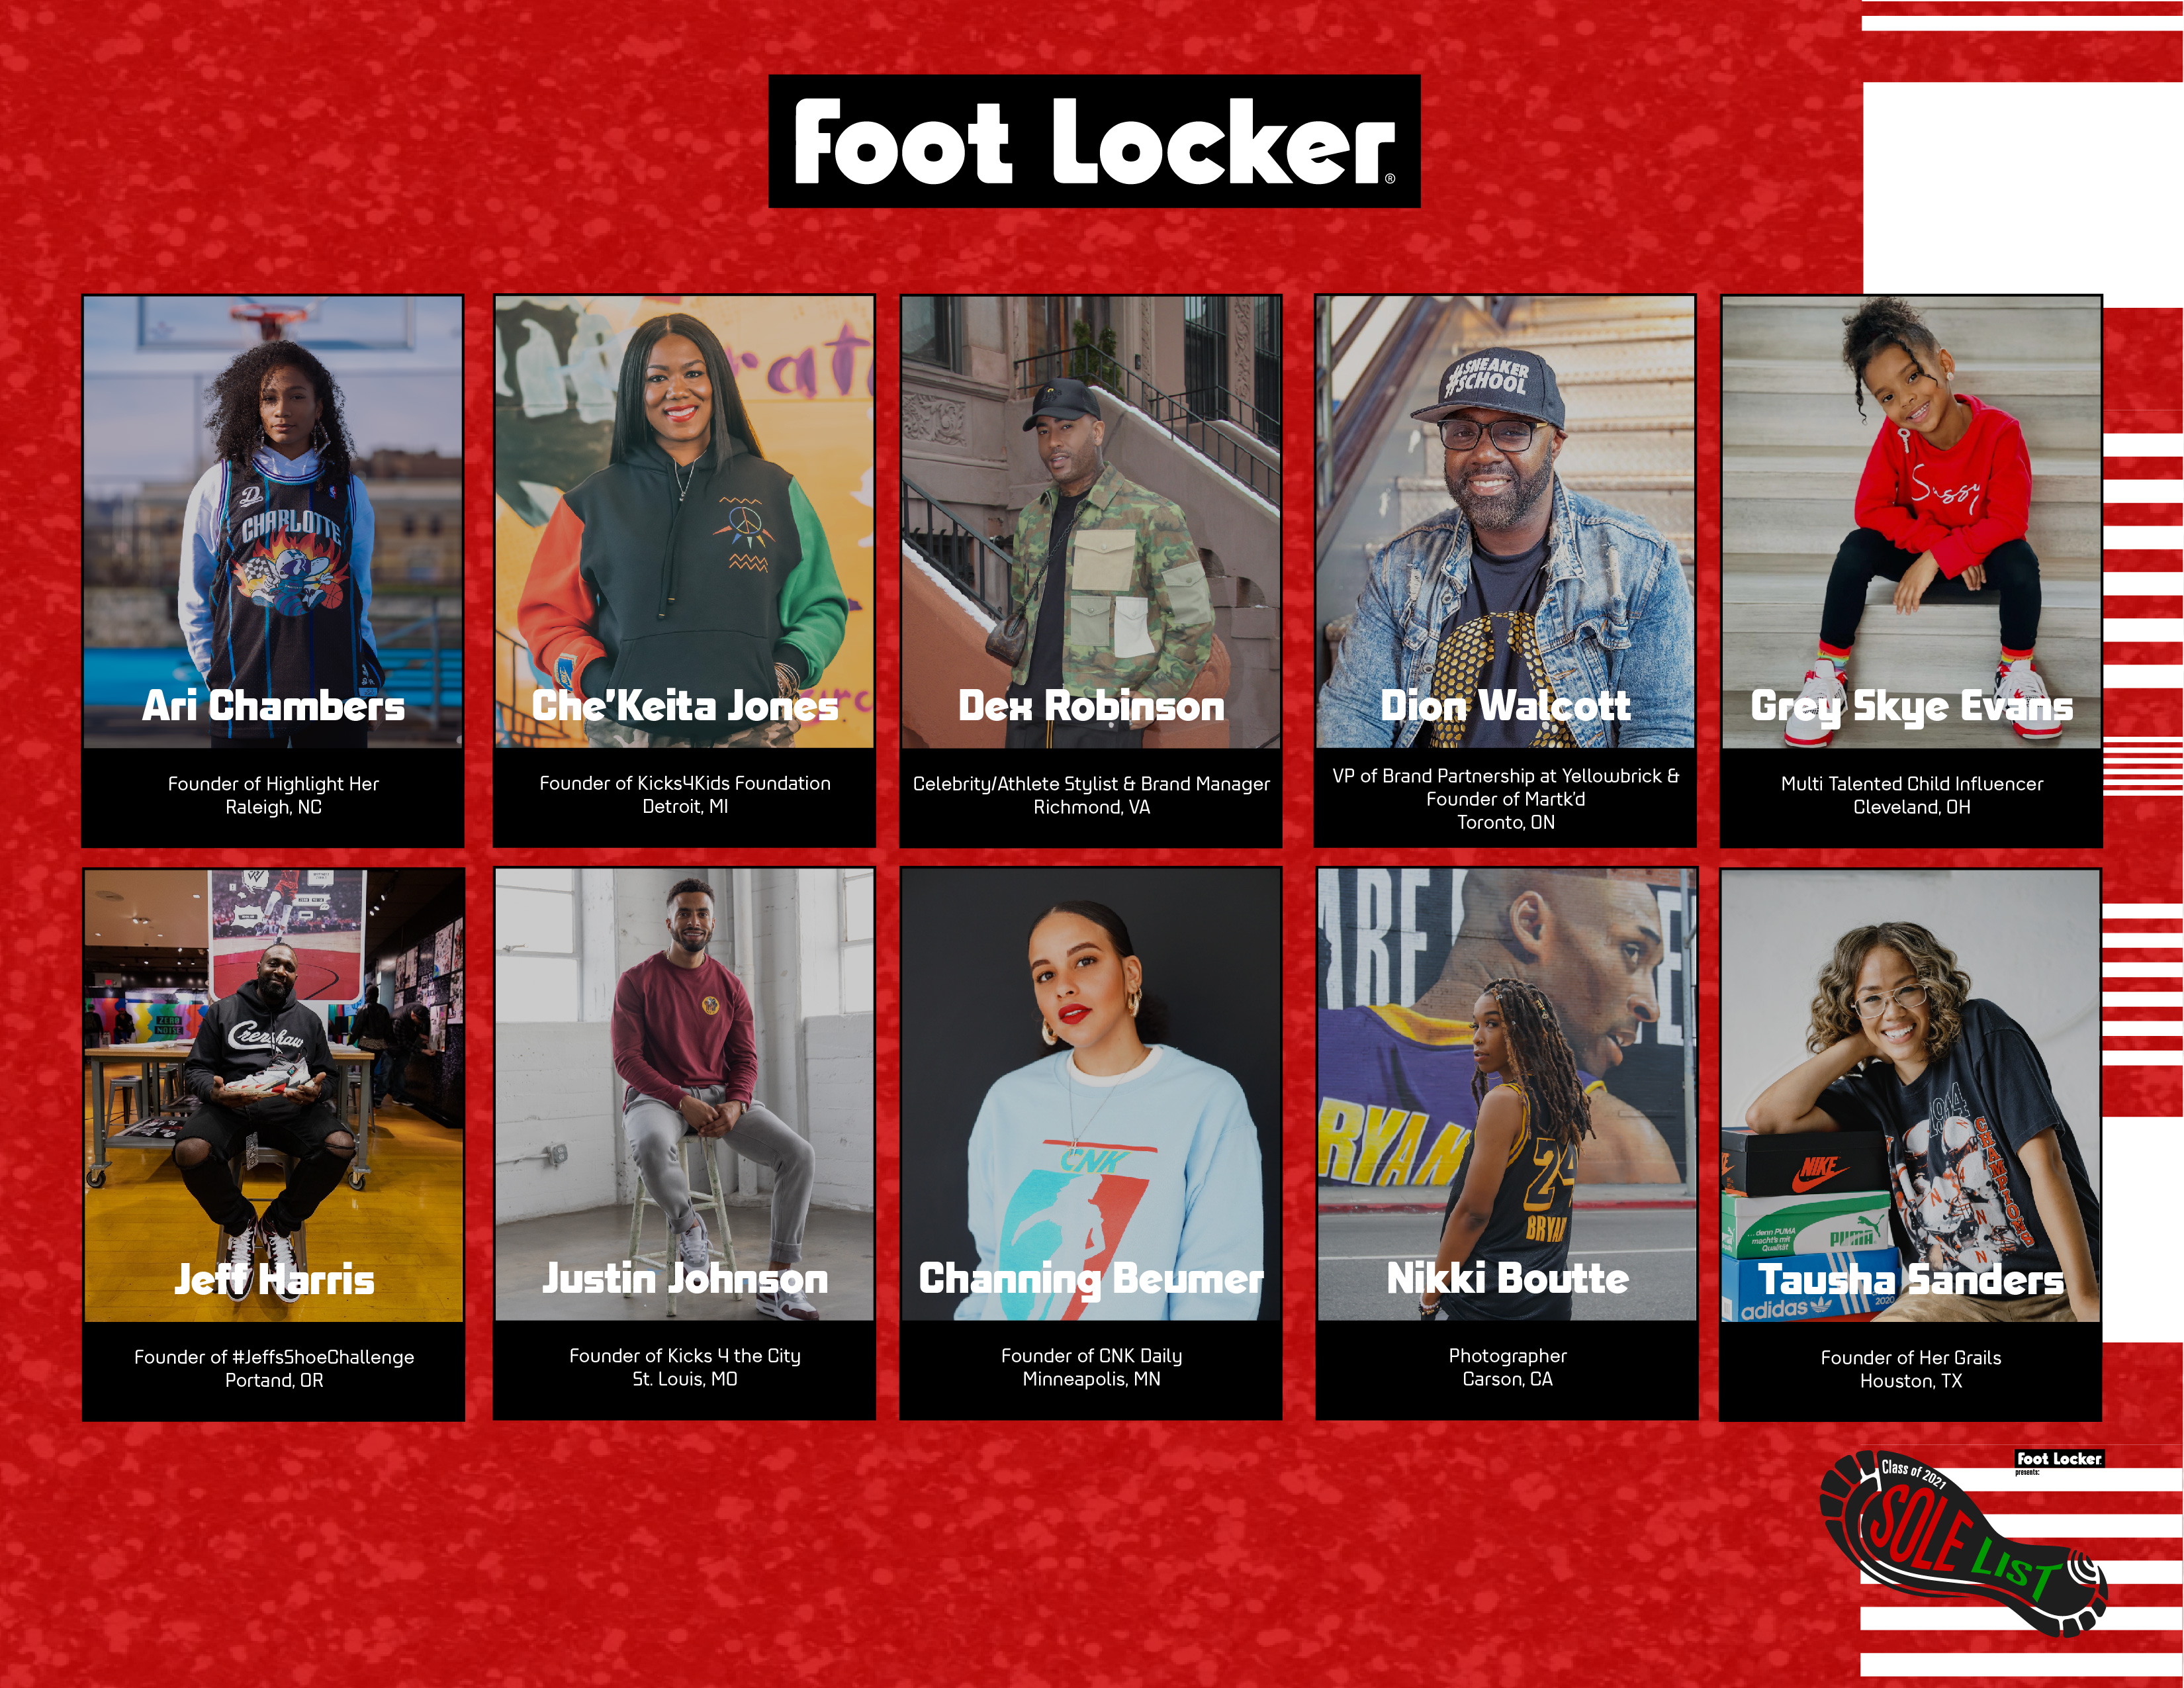 Foot Locker Celebrates Black Sneaker Influencers with 'The Sole List'